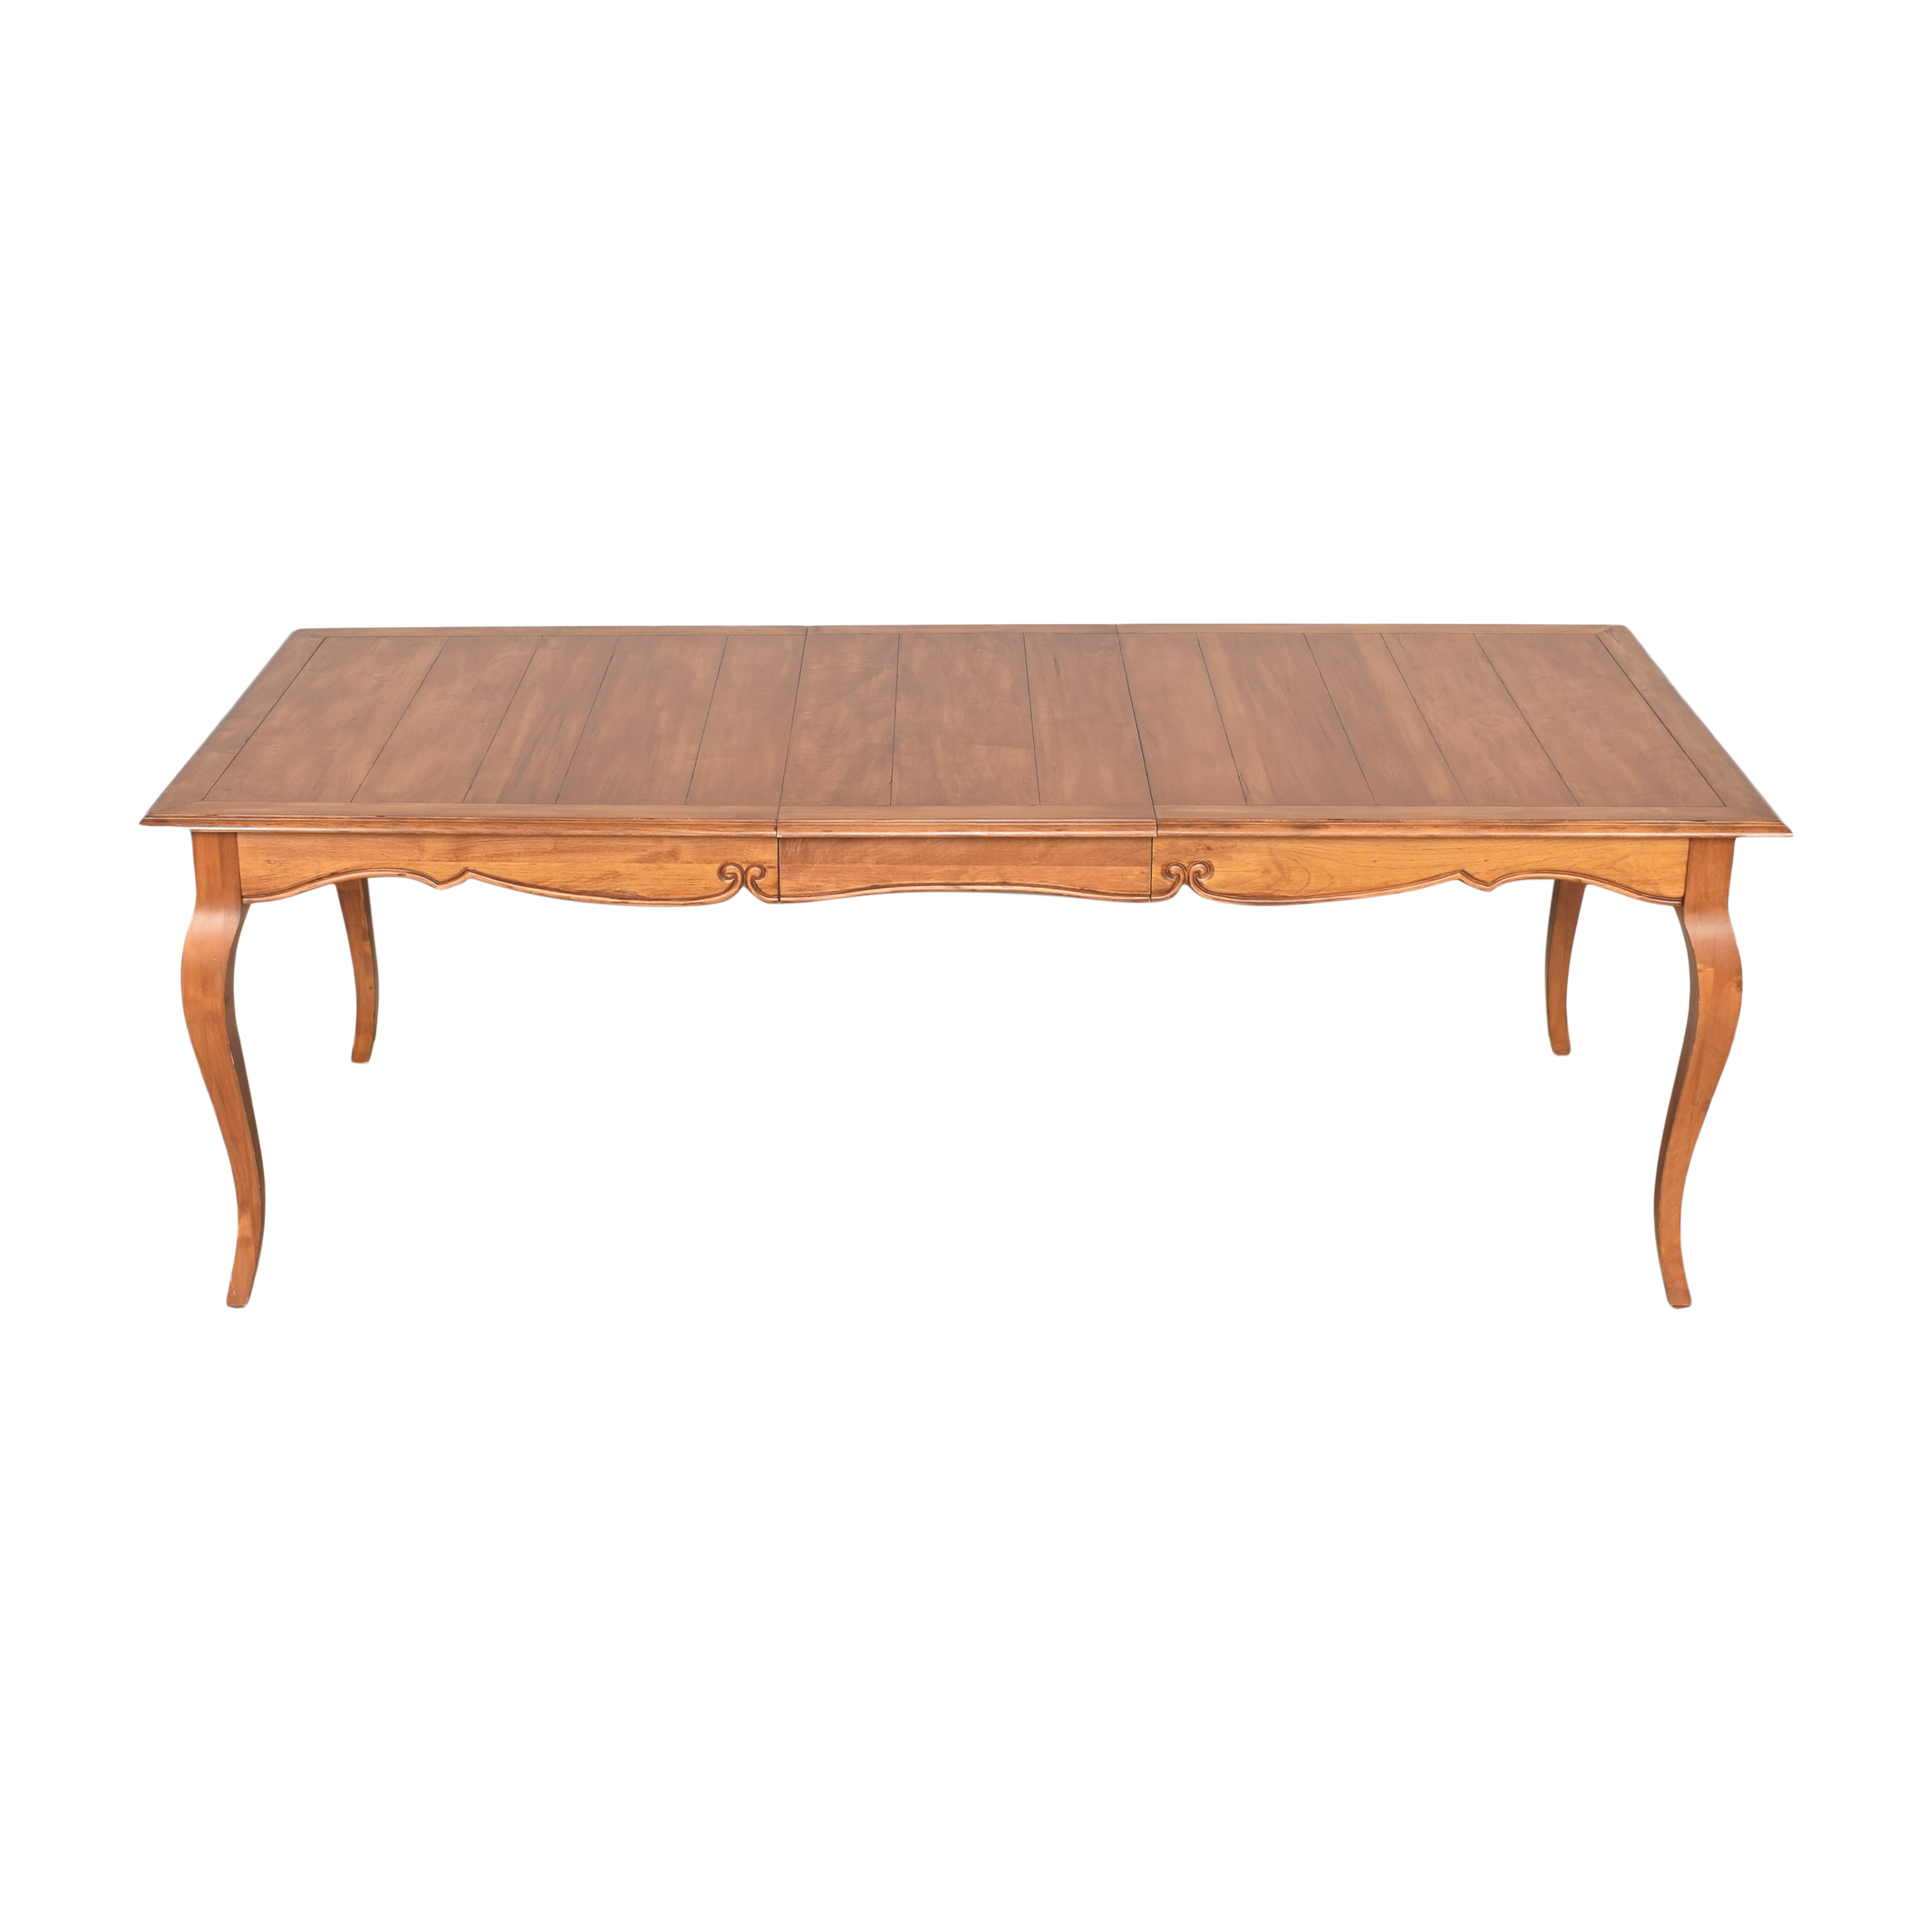 Ethan Allen Ethan Allen Legacy Collection Extendable Dining Table used